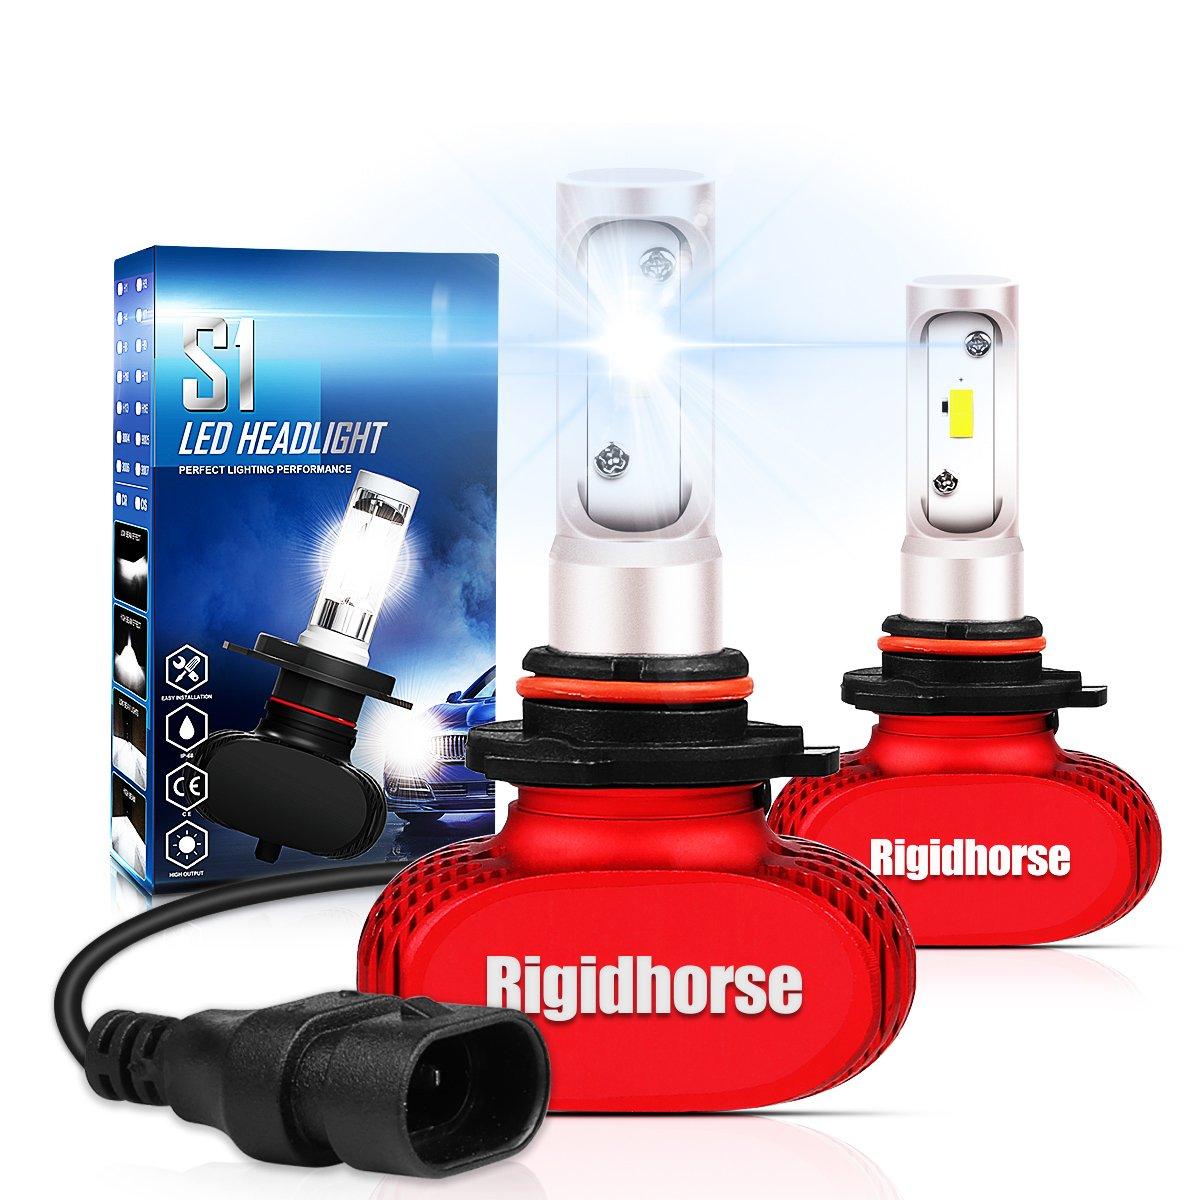 Rigidhorse H11(H9,H8) LED Headlight Bulbs With CSP Chips 60W 8500LM 6500K Cool White LED Headlight Bulbs All-in-One Conversion Kit, Black, 2 Years Warranty H11/H8/H9/H16(JP)